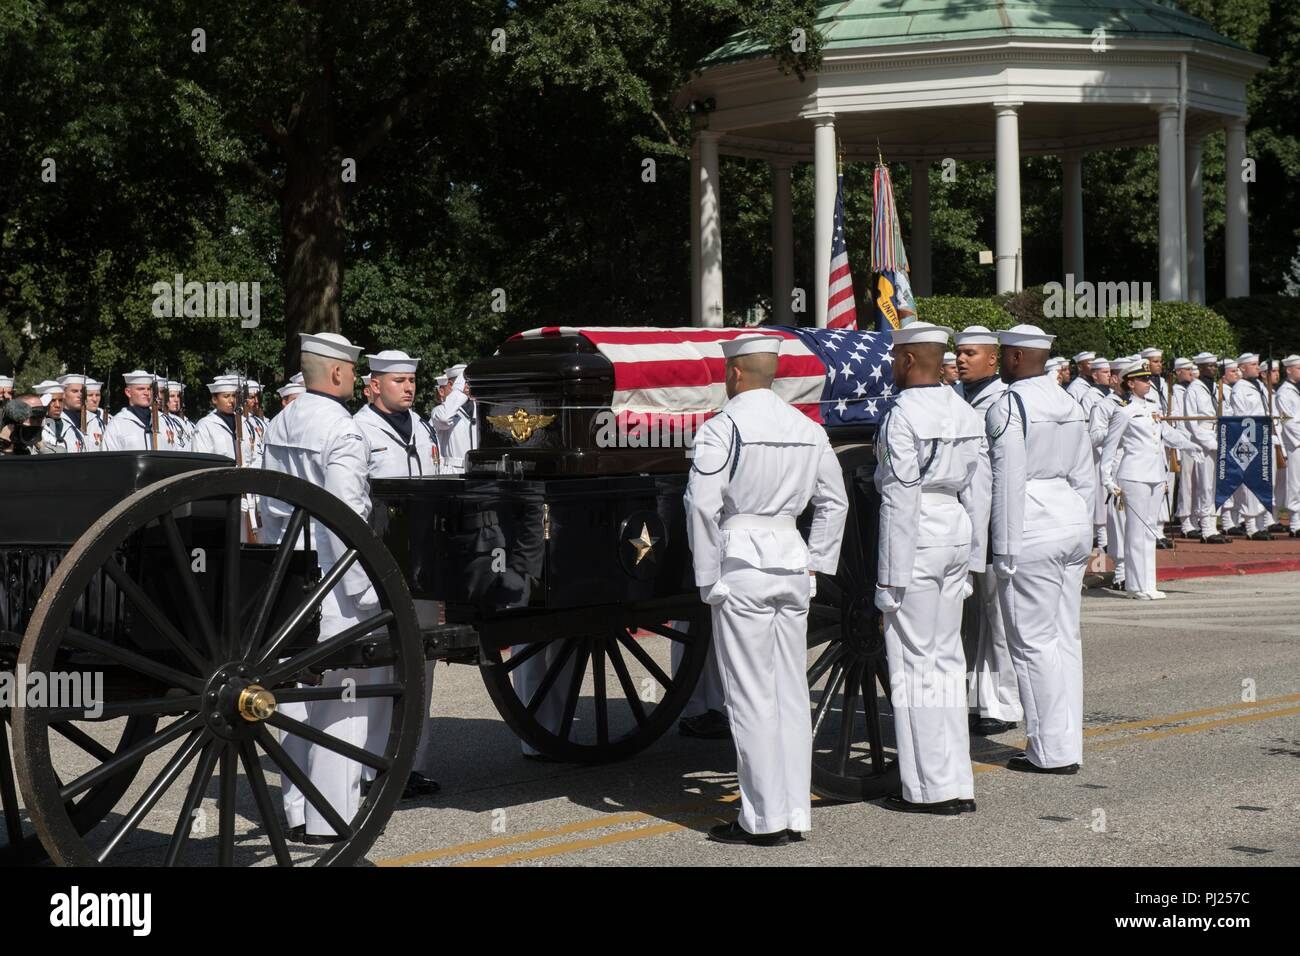 The flag draped casket of Sen. John McCain on a horse-drawn caisson as Midshipmen prepare to move the casket to the final resting place a the United States Naval Academy Cemetery September 2, 2018 in Annapolis, Maryland. John S. McCain, III graduated from the United States Naval Academy in 1958. He was a pilot in the United States Navy, a prisoner of war in Vietnam, a Congressmen and Senator and twice presidential candidate. He received numerous awards, including the Silver Star, Legion of Merit, Purple Heart, and Distinguished Flying Cross. - Stock Image